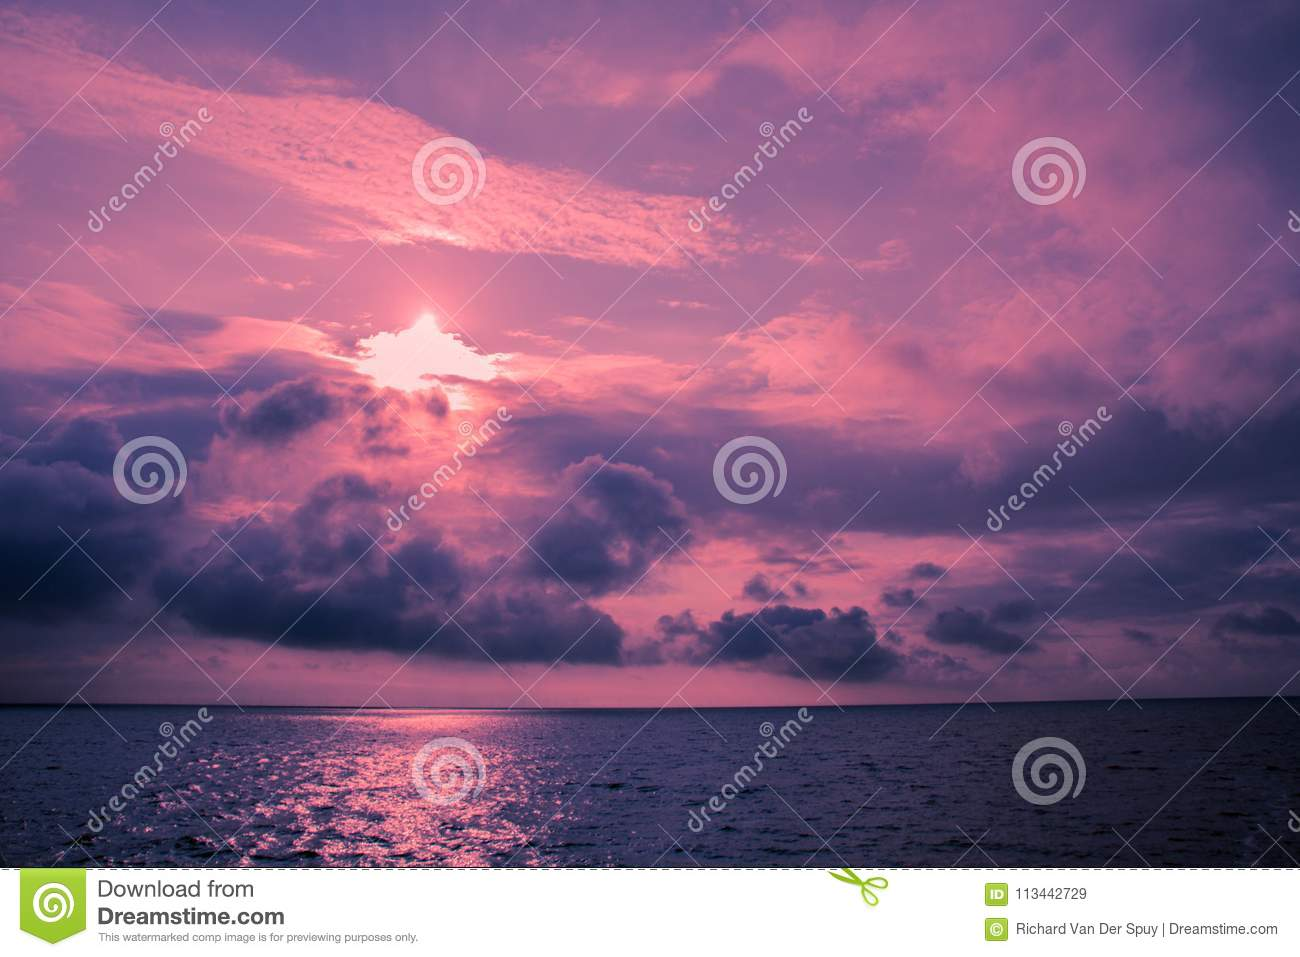 Ultra-violet seascape with clouds